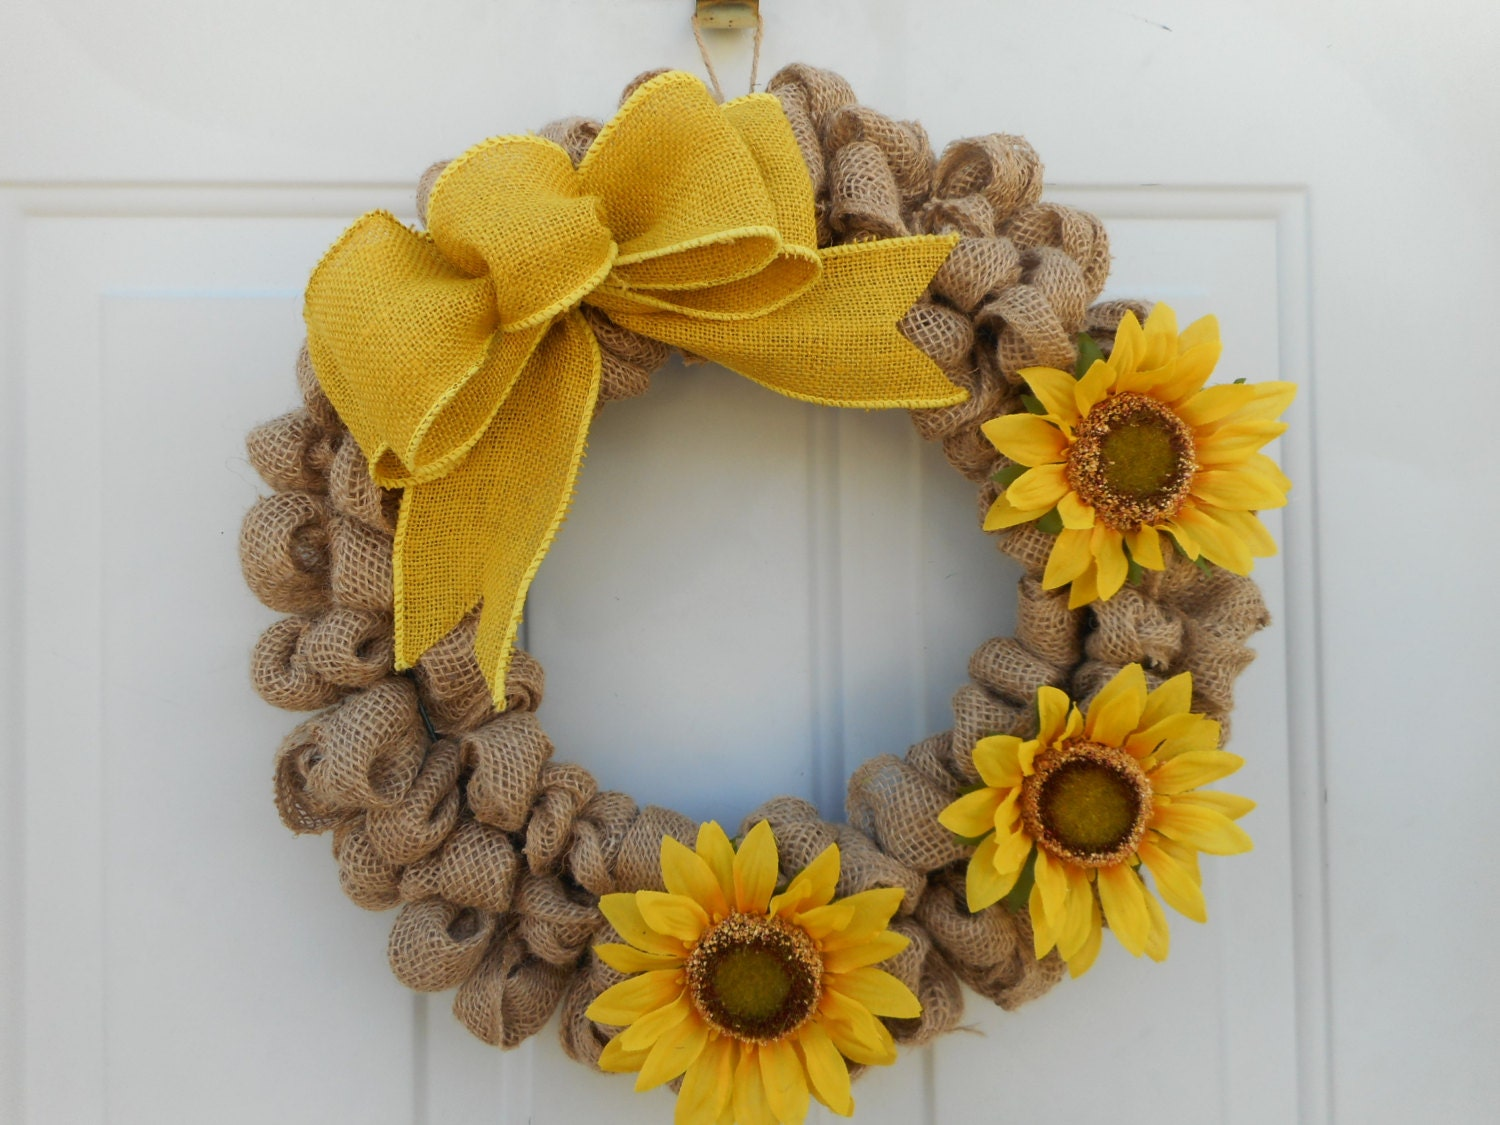 Country Wreath Burlap Wreath Sunflower Wreath Sunflower